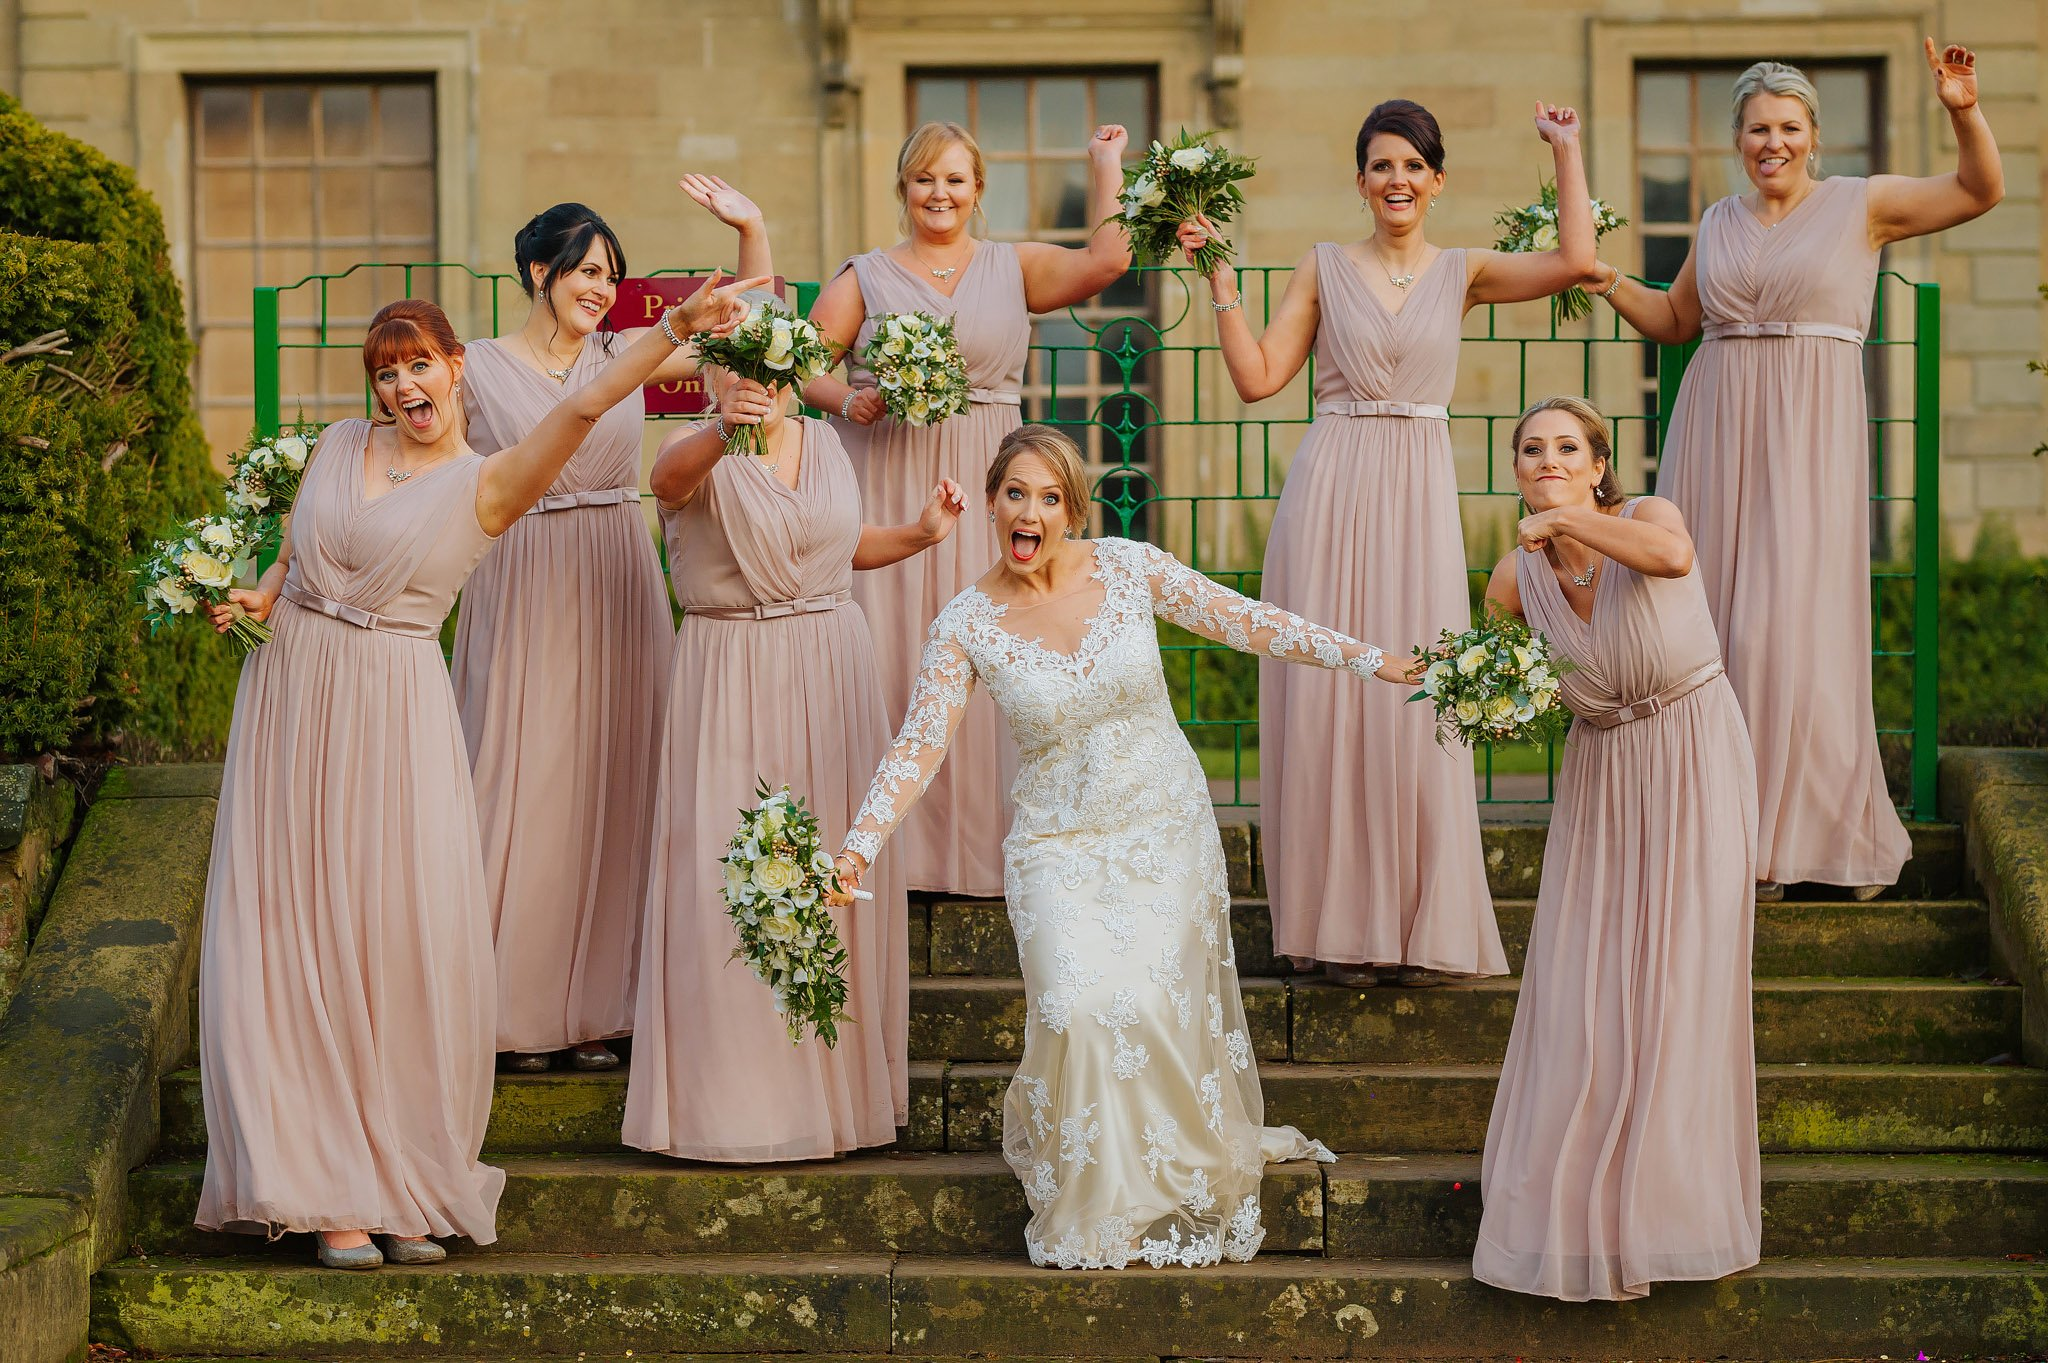 coombe abbey wedding coventry 73 - Coombe Abbey wedding in Coventry, Warwickshire - Sam + Matt